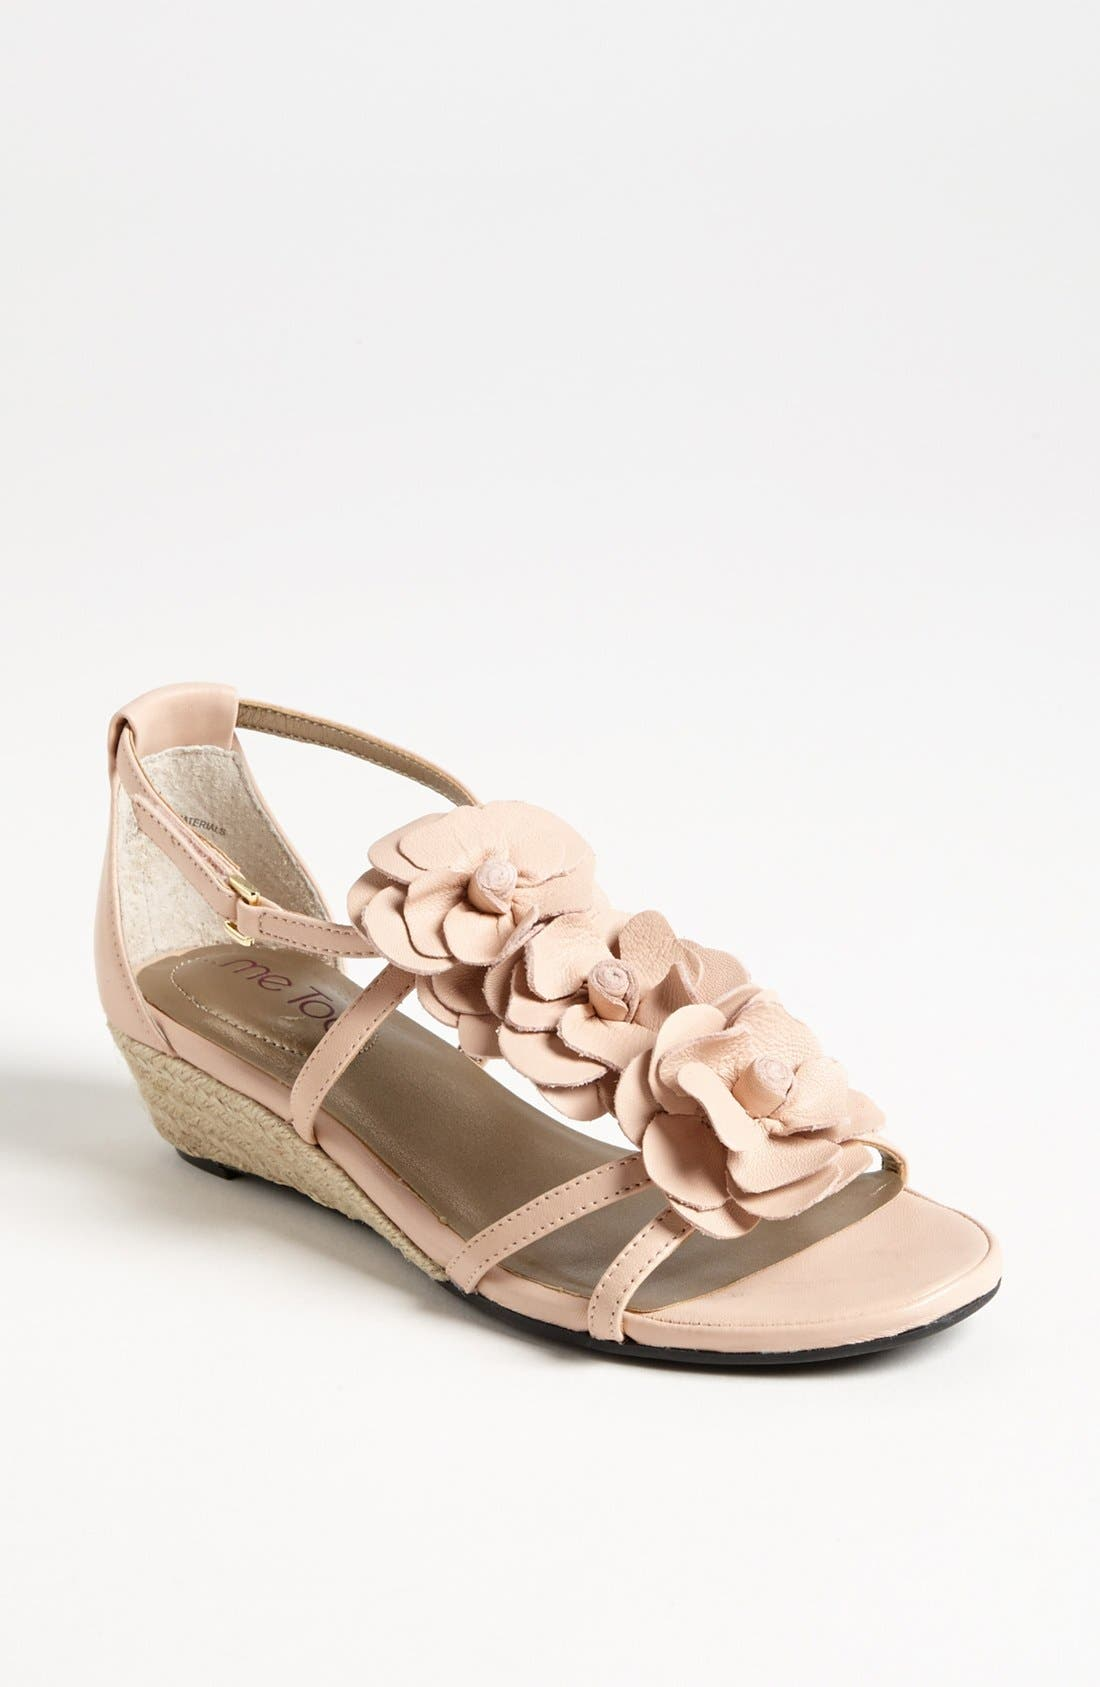 Alternate Image 1 Selected - Me Too 'Simona' Wedge Sandal